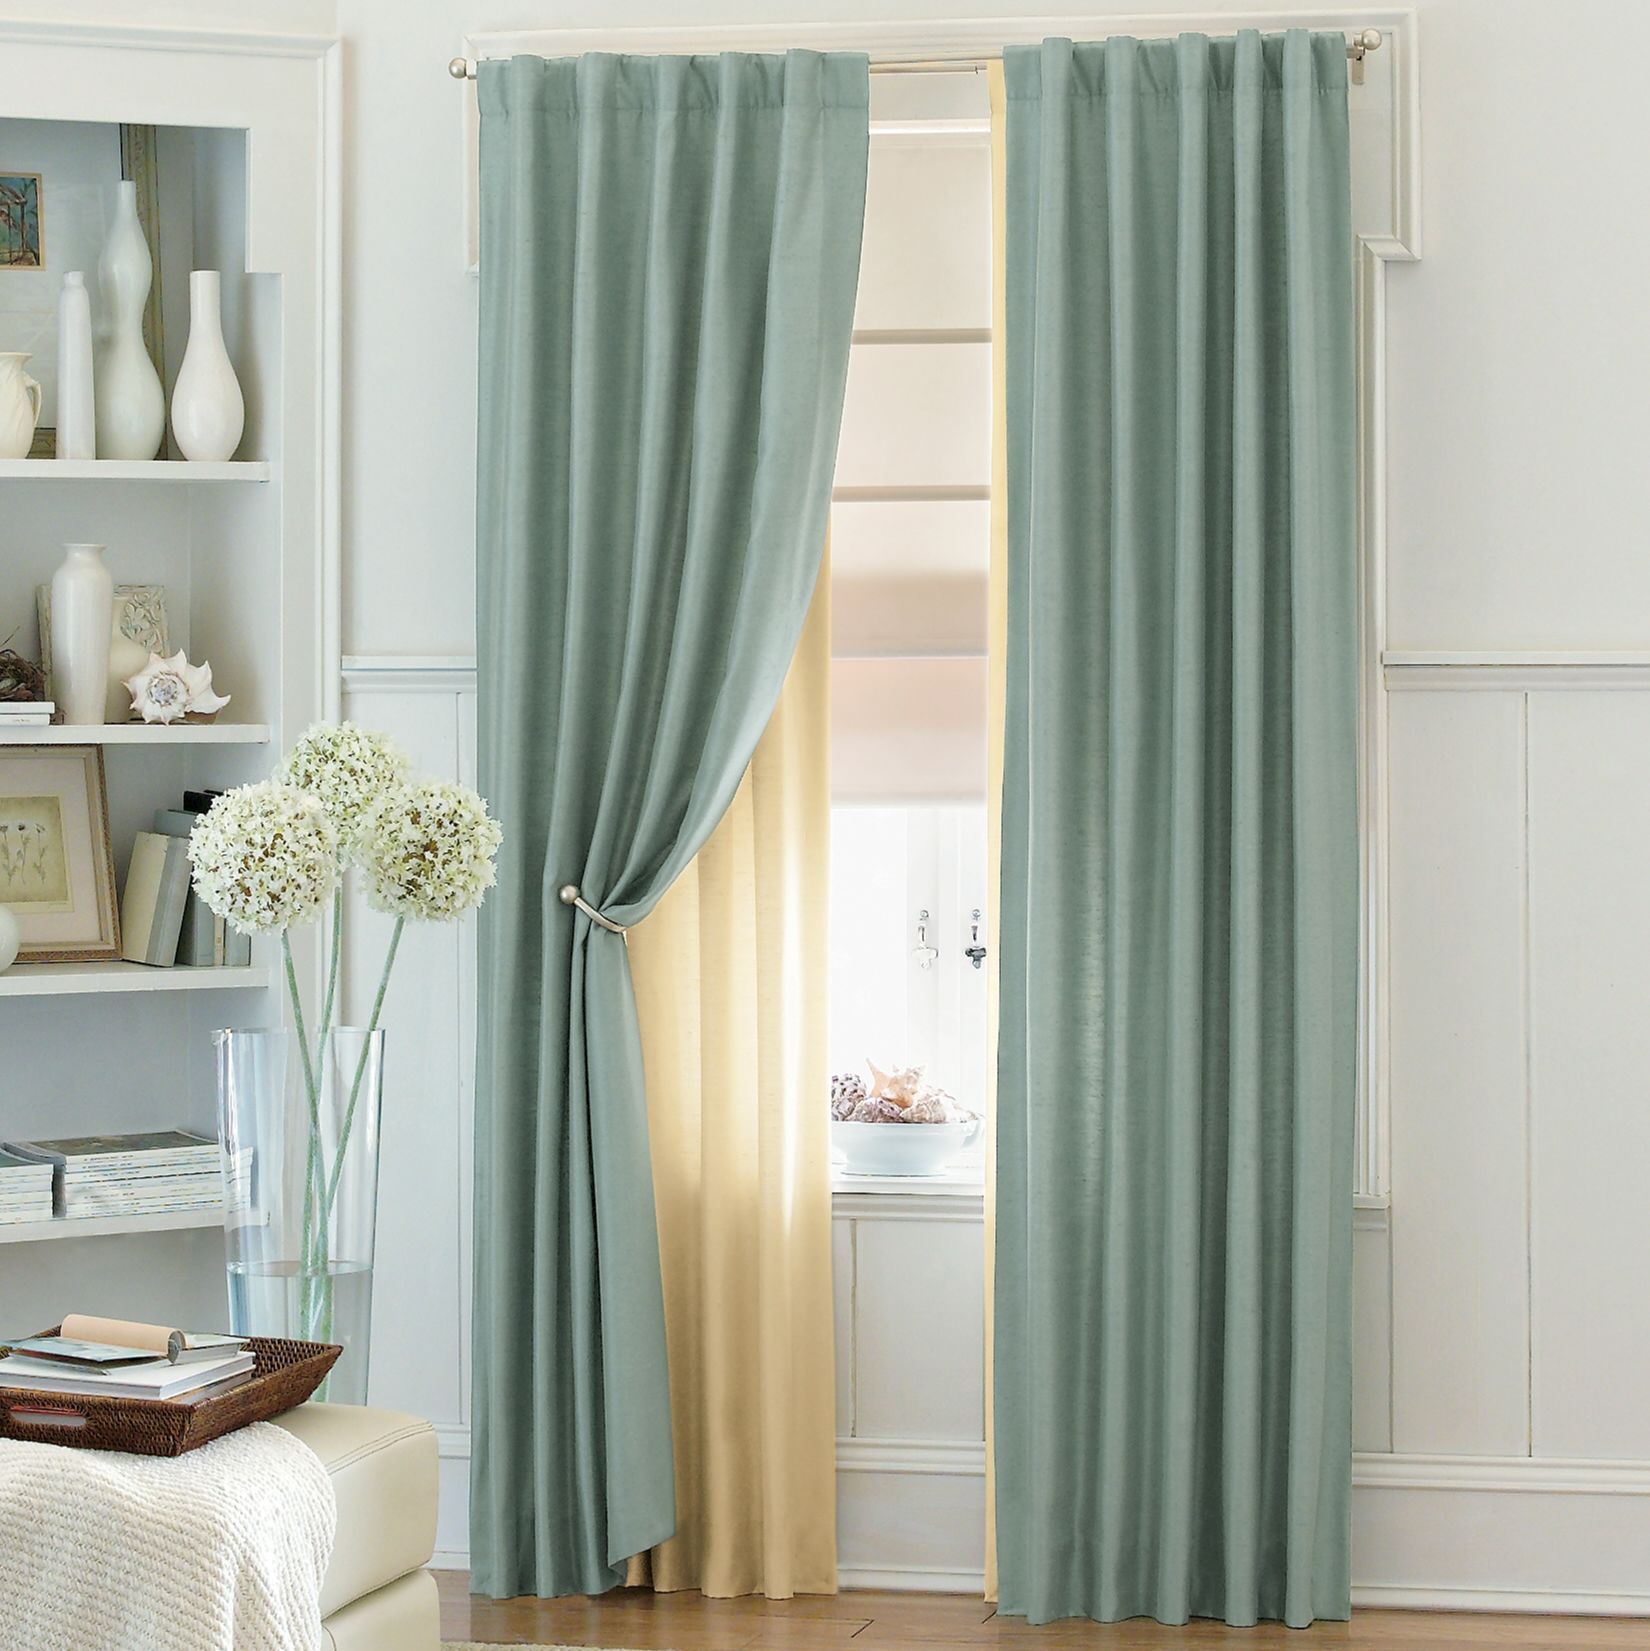 Awe-inspiring Grey Double Bedroom Curtains With Single